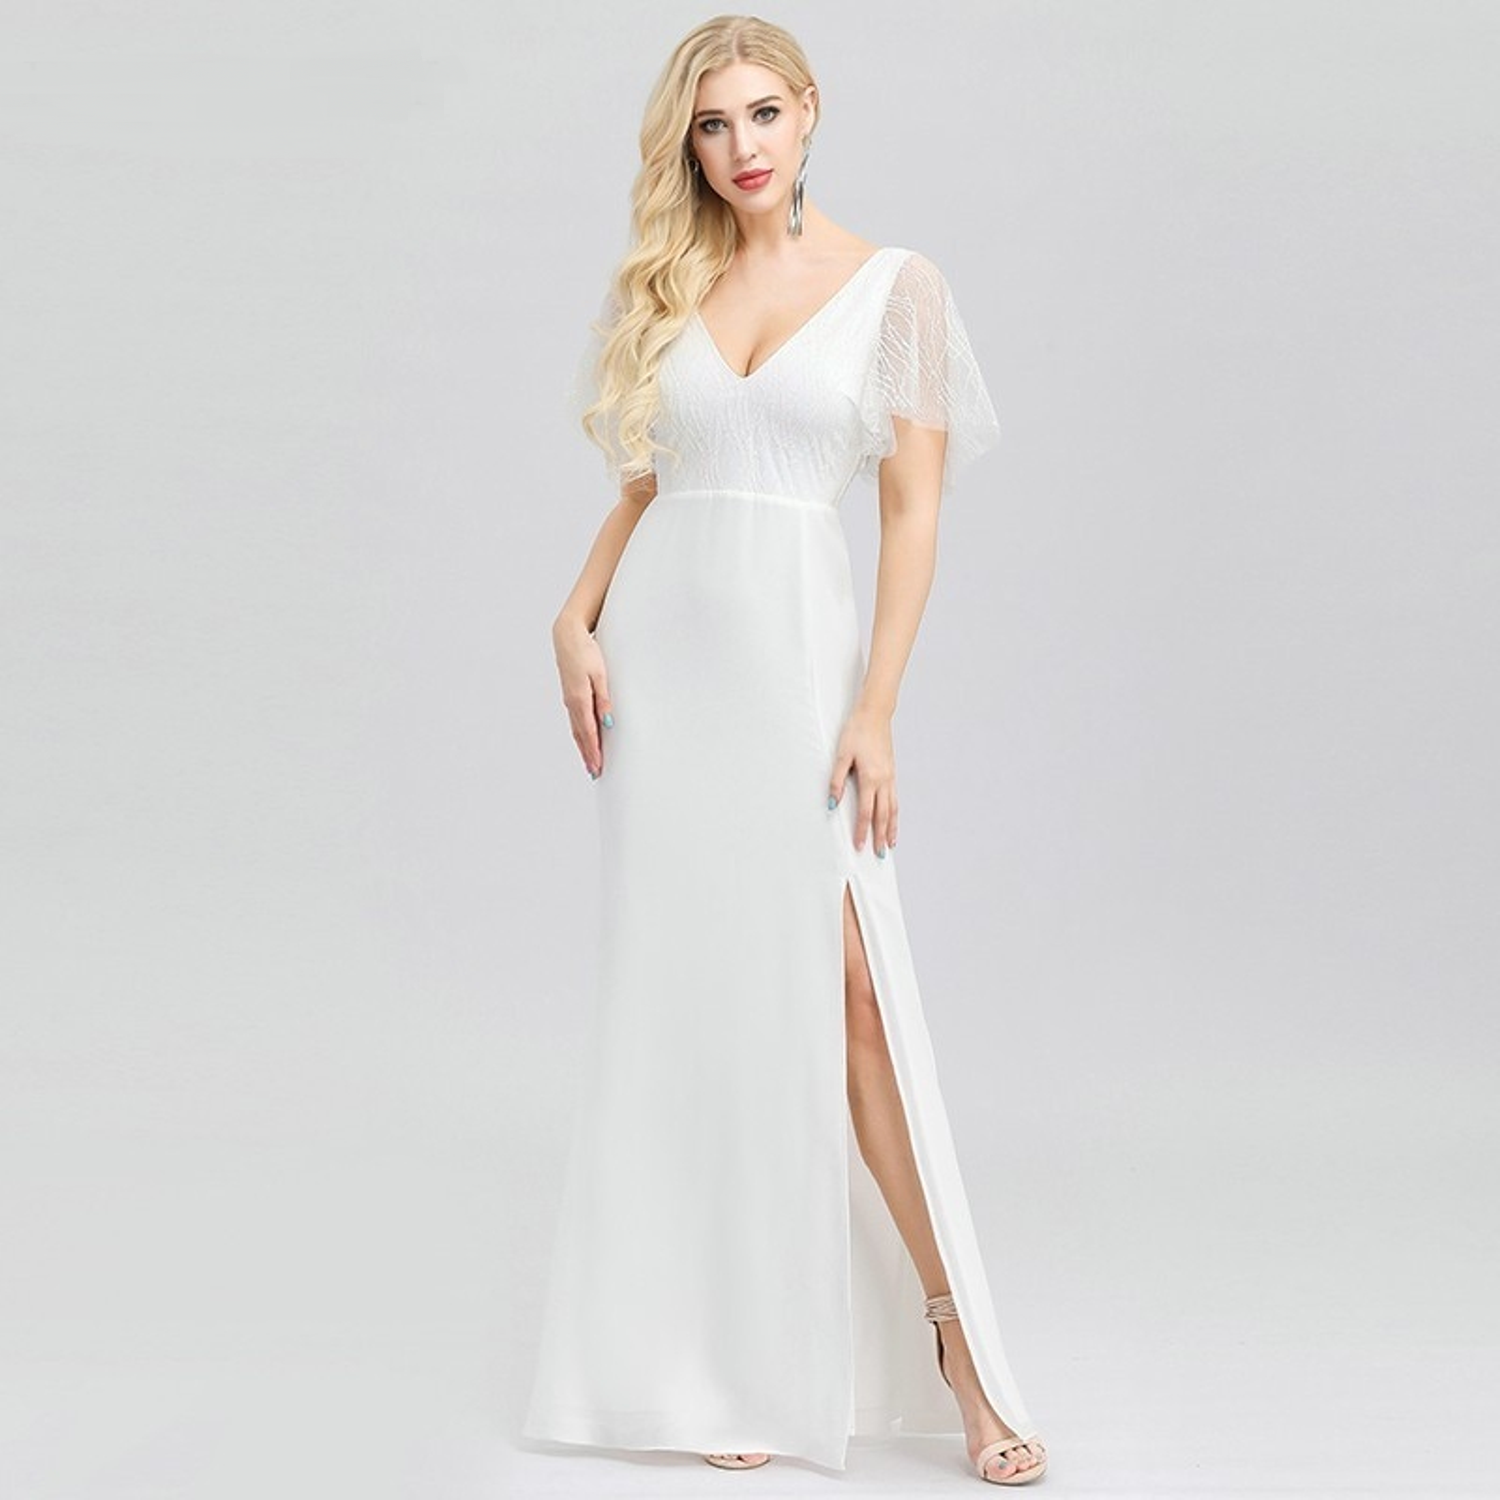 Wedding dress with a slit and flutter sleeves